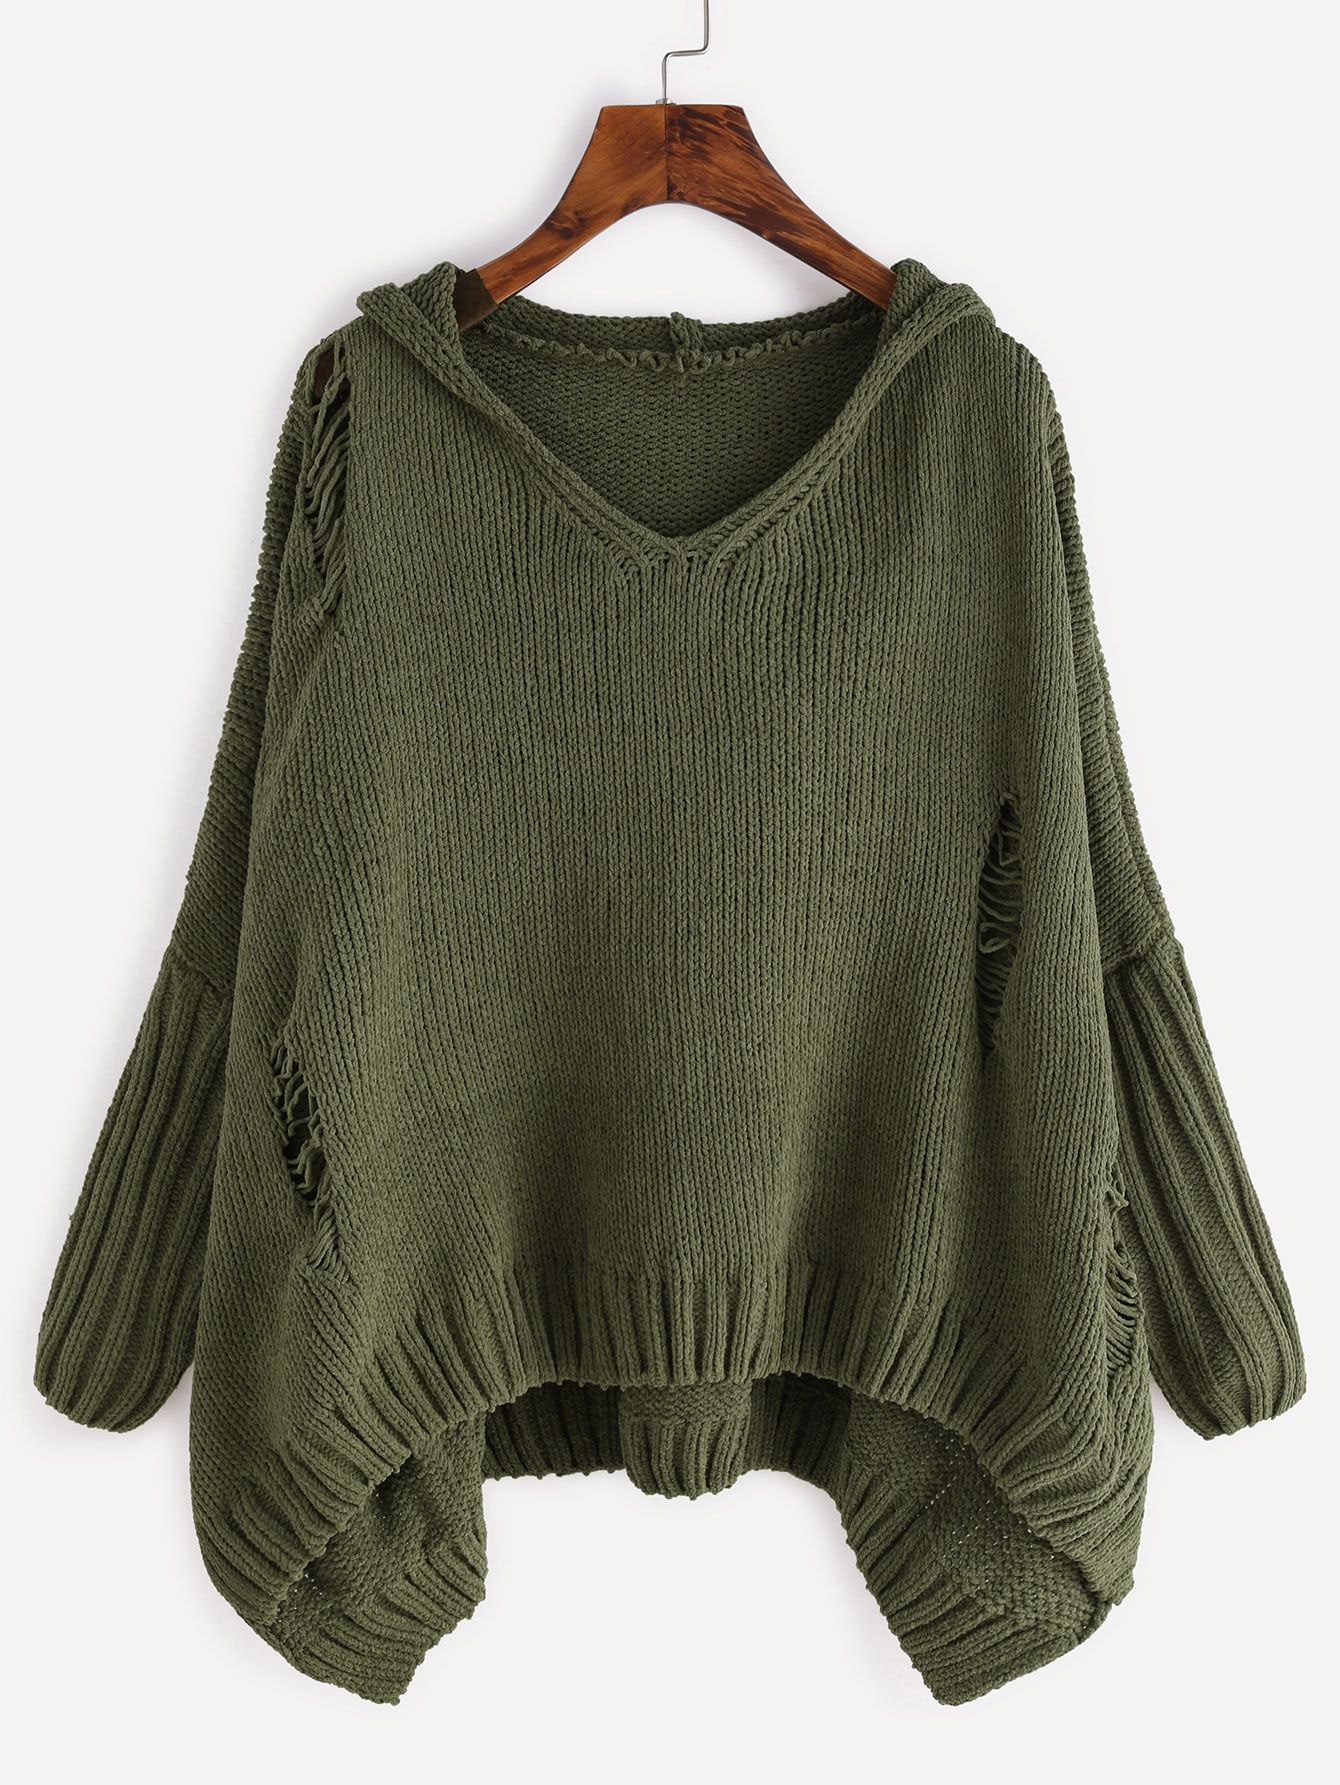 b42d1d016 Distressed High Low Hooded Sweater  Knitwear